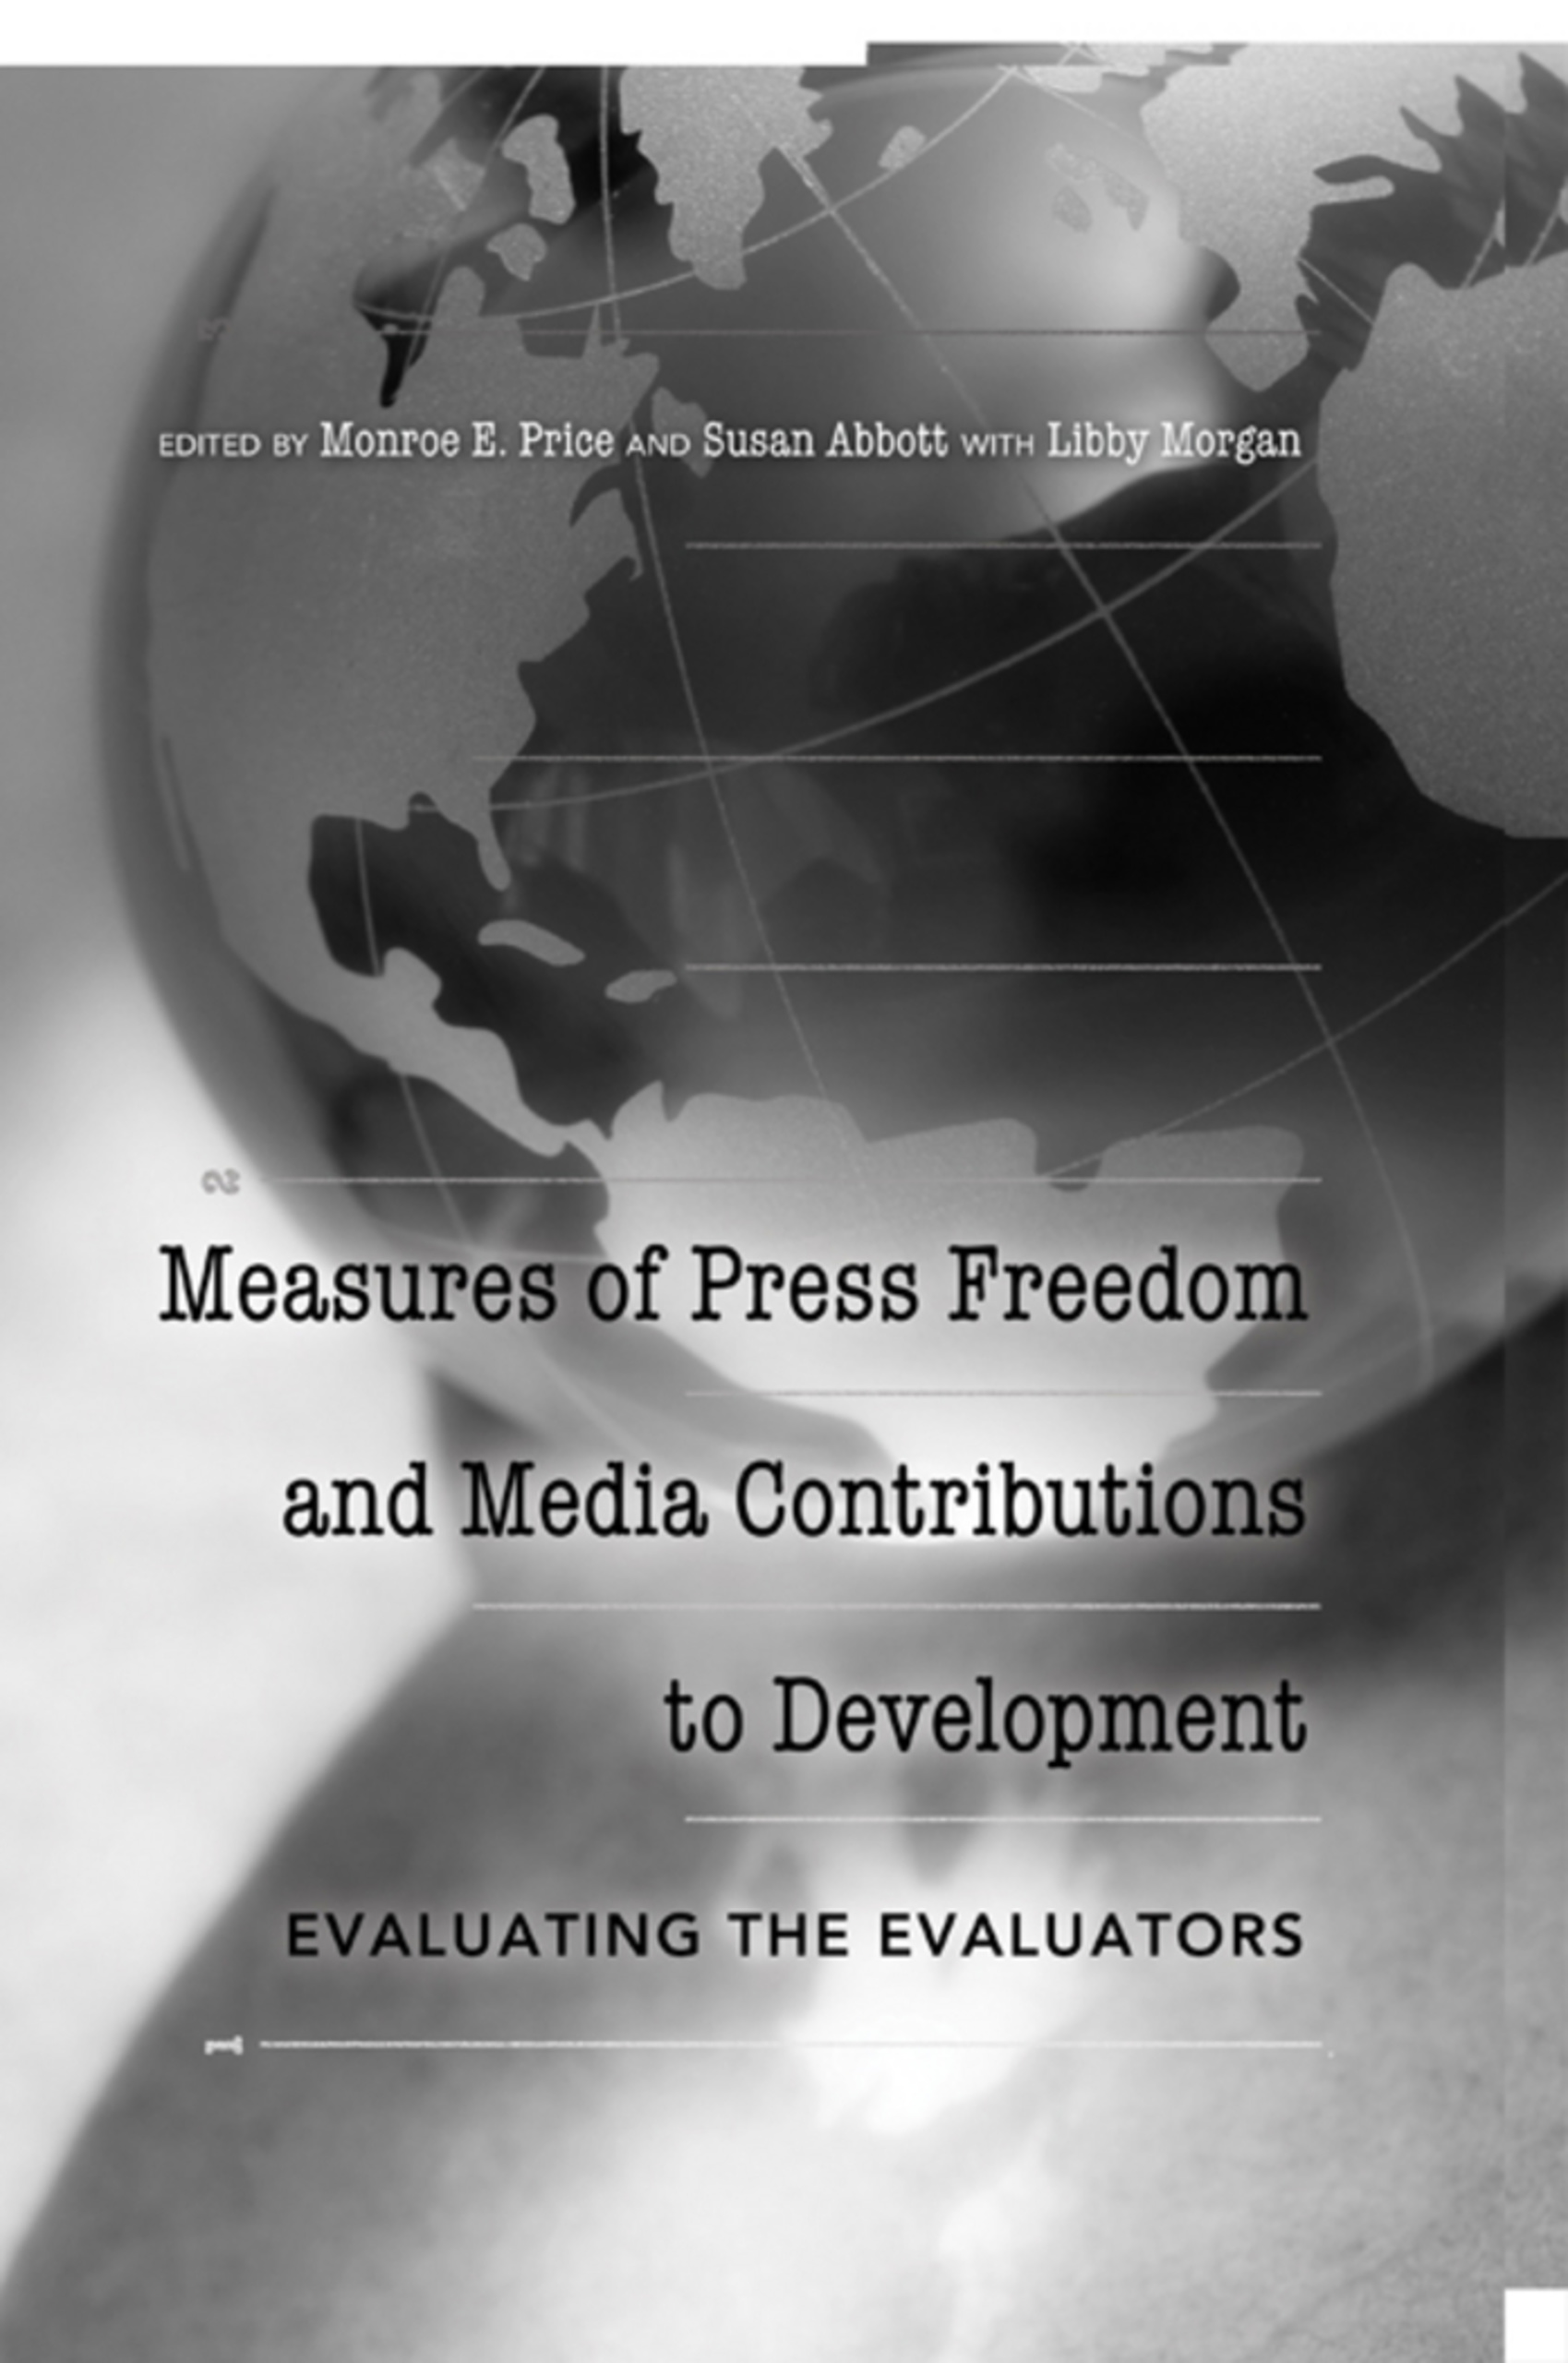 Title: Measures of Press Freedom and Media Contributions to Development